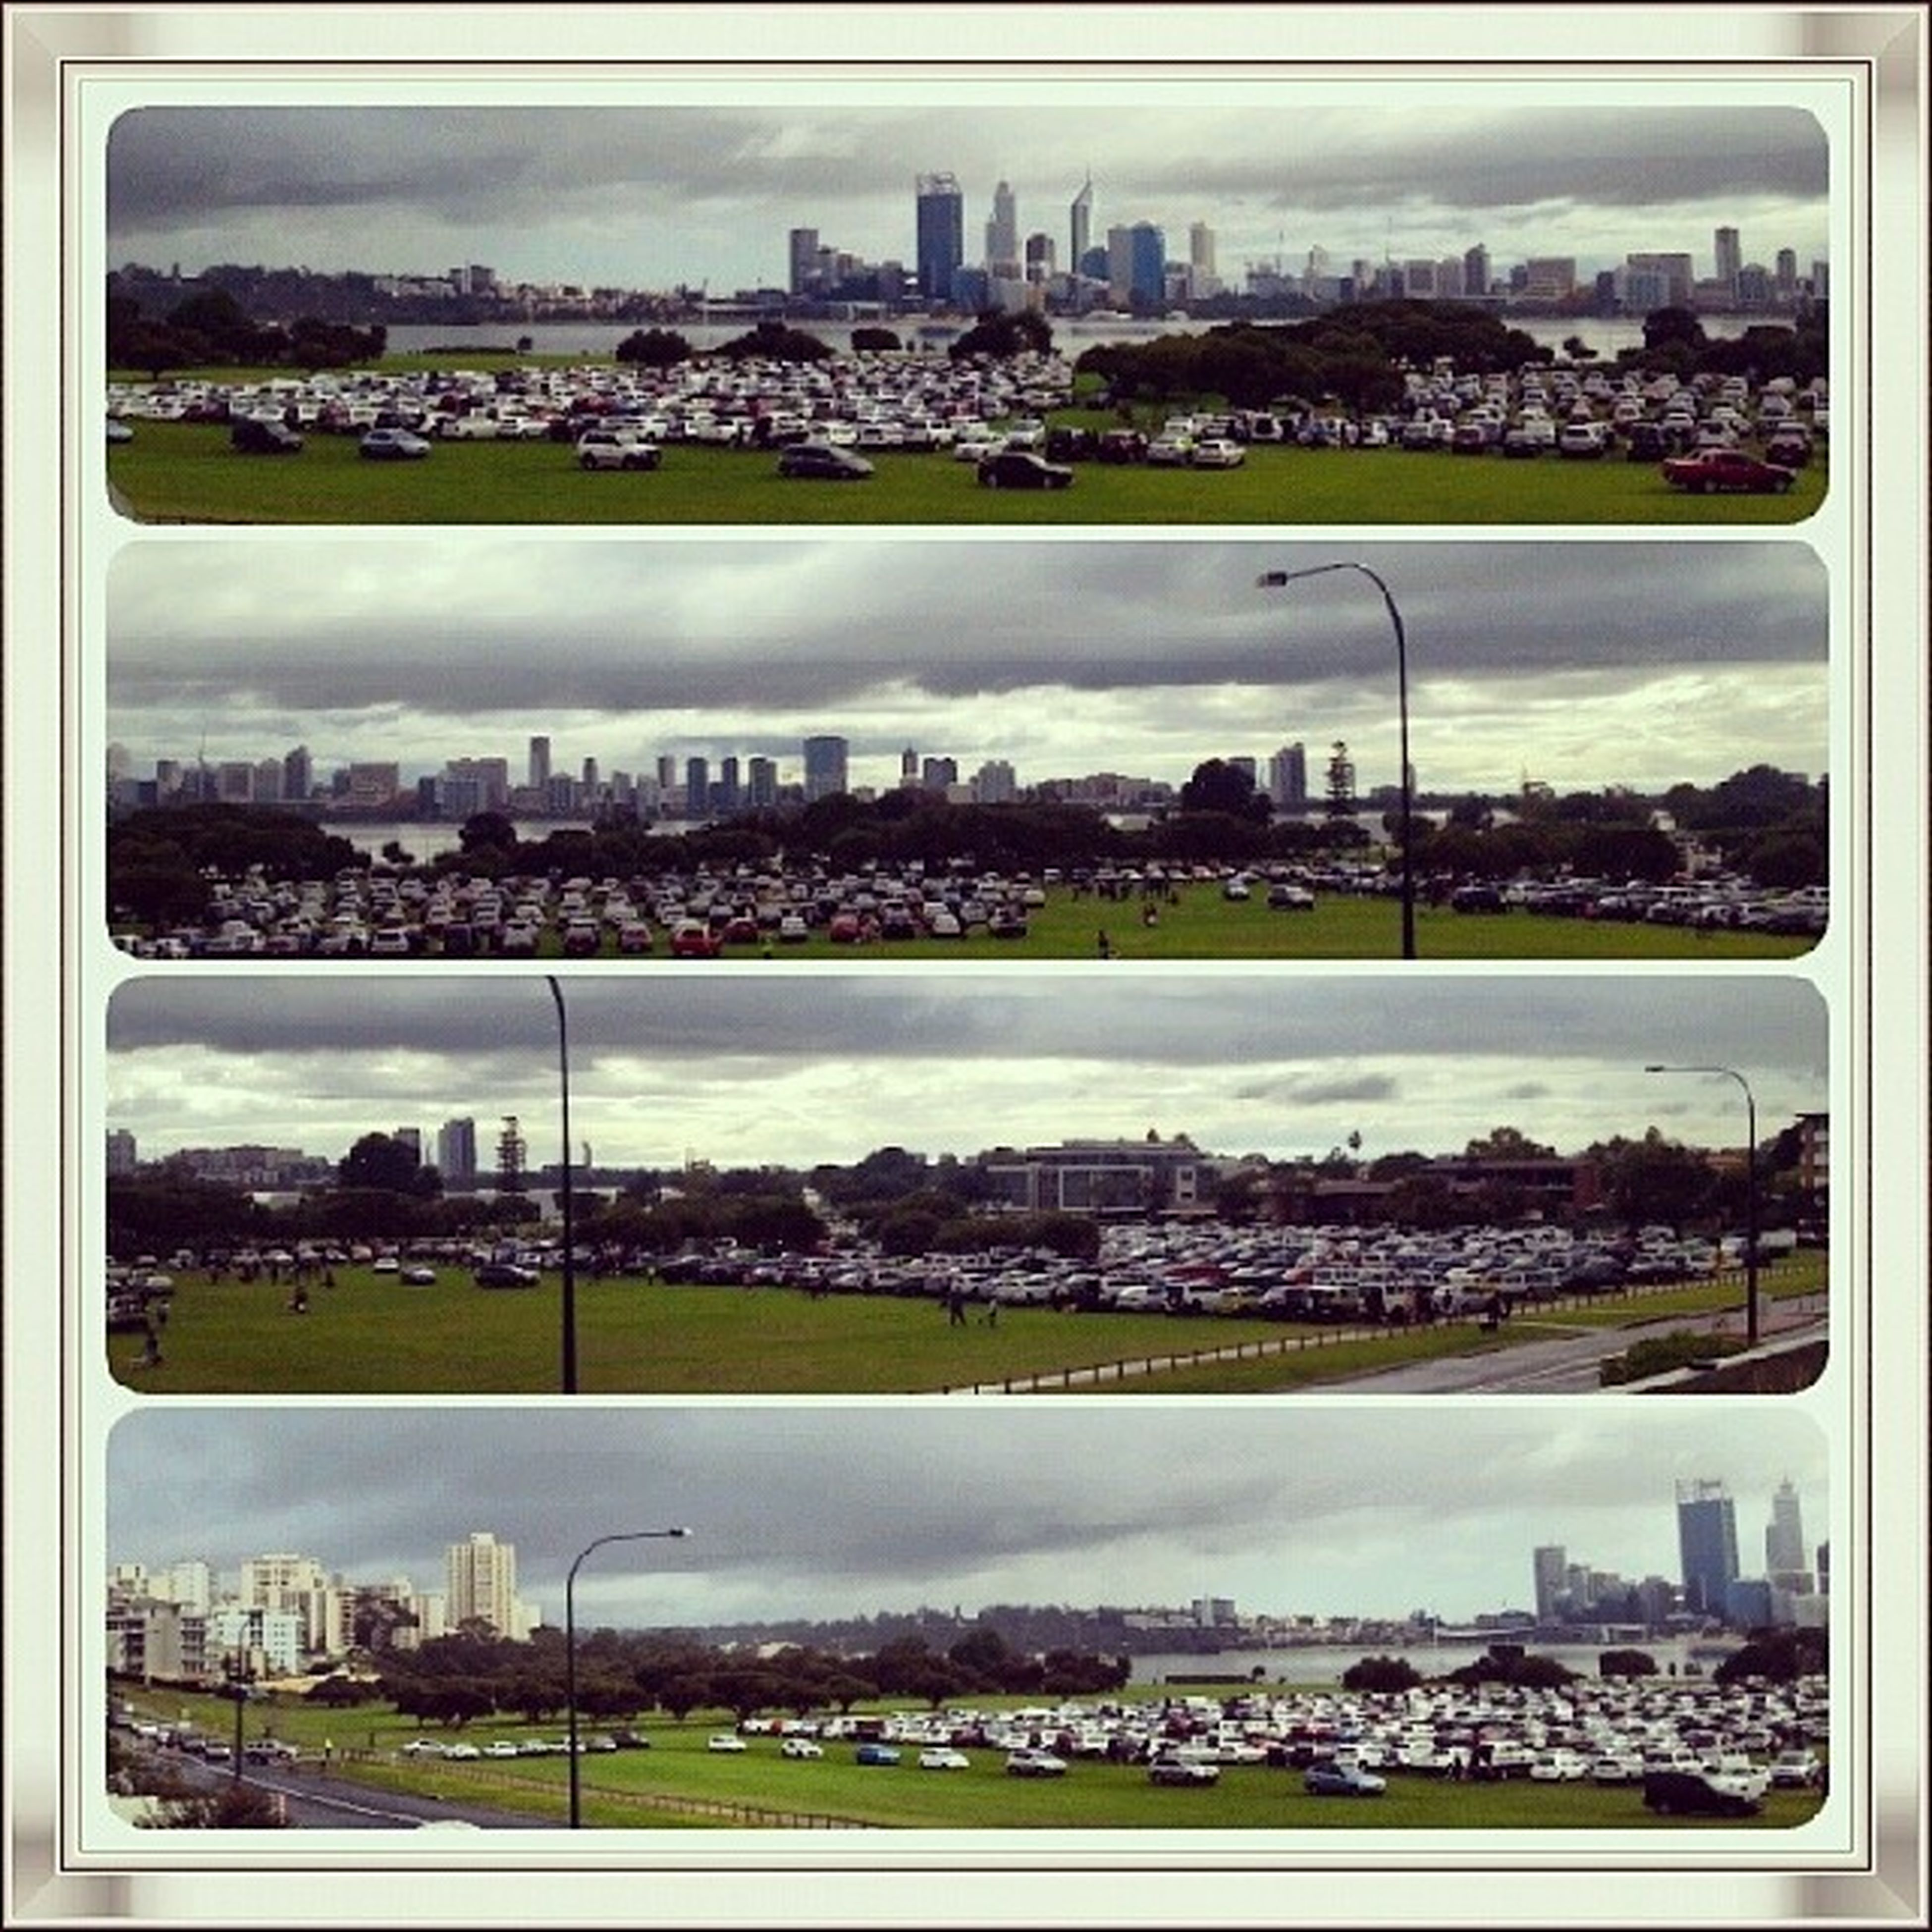 It doesn't take long for Sirjamesmitchellpark to fill up for the Millionpawswalk Somanypuppies Carpark